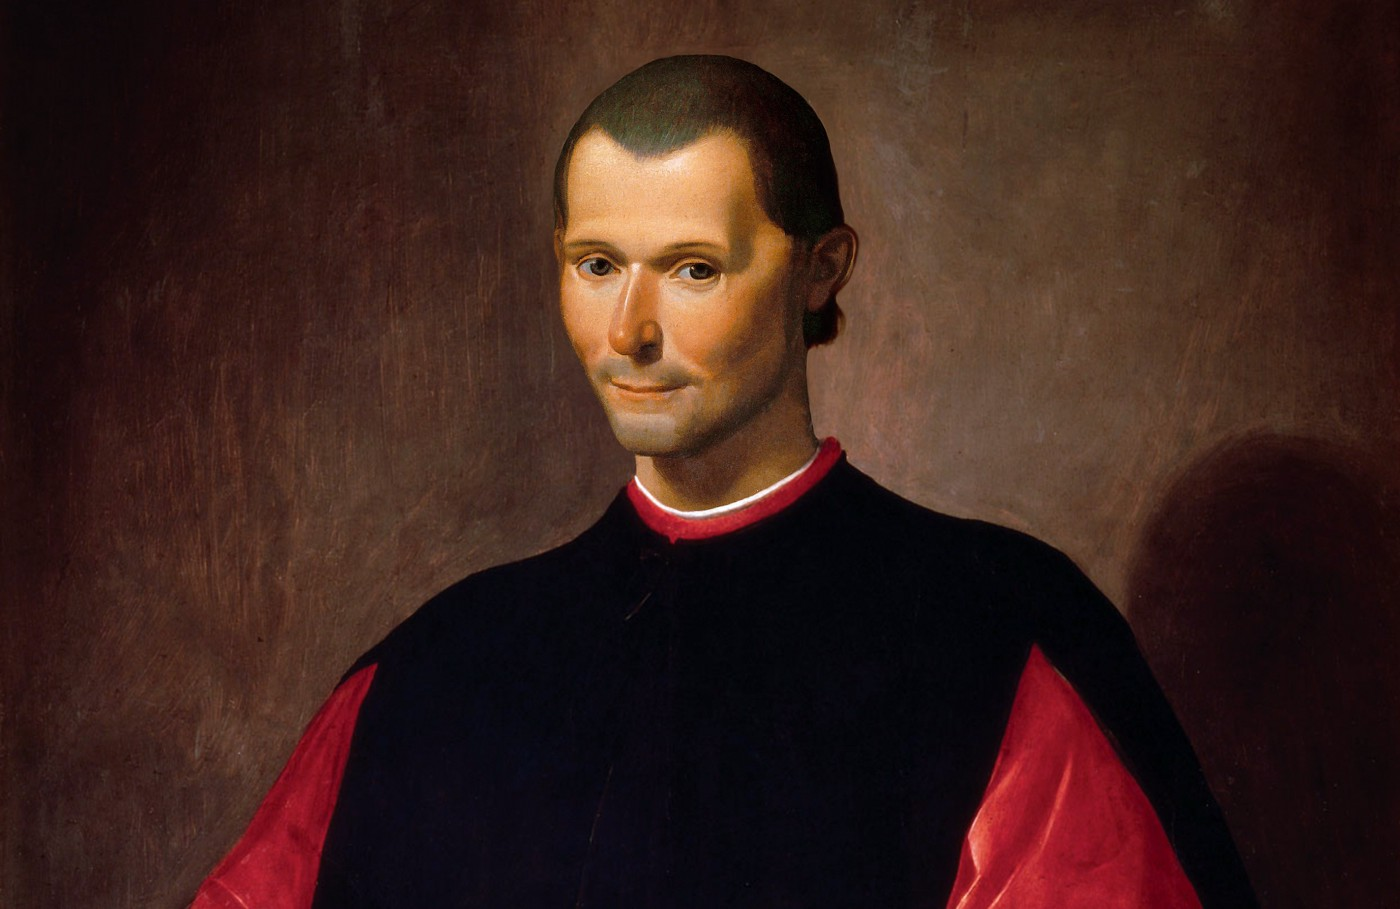 Image of Niccolò Machiavelli